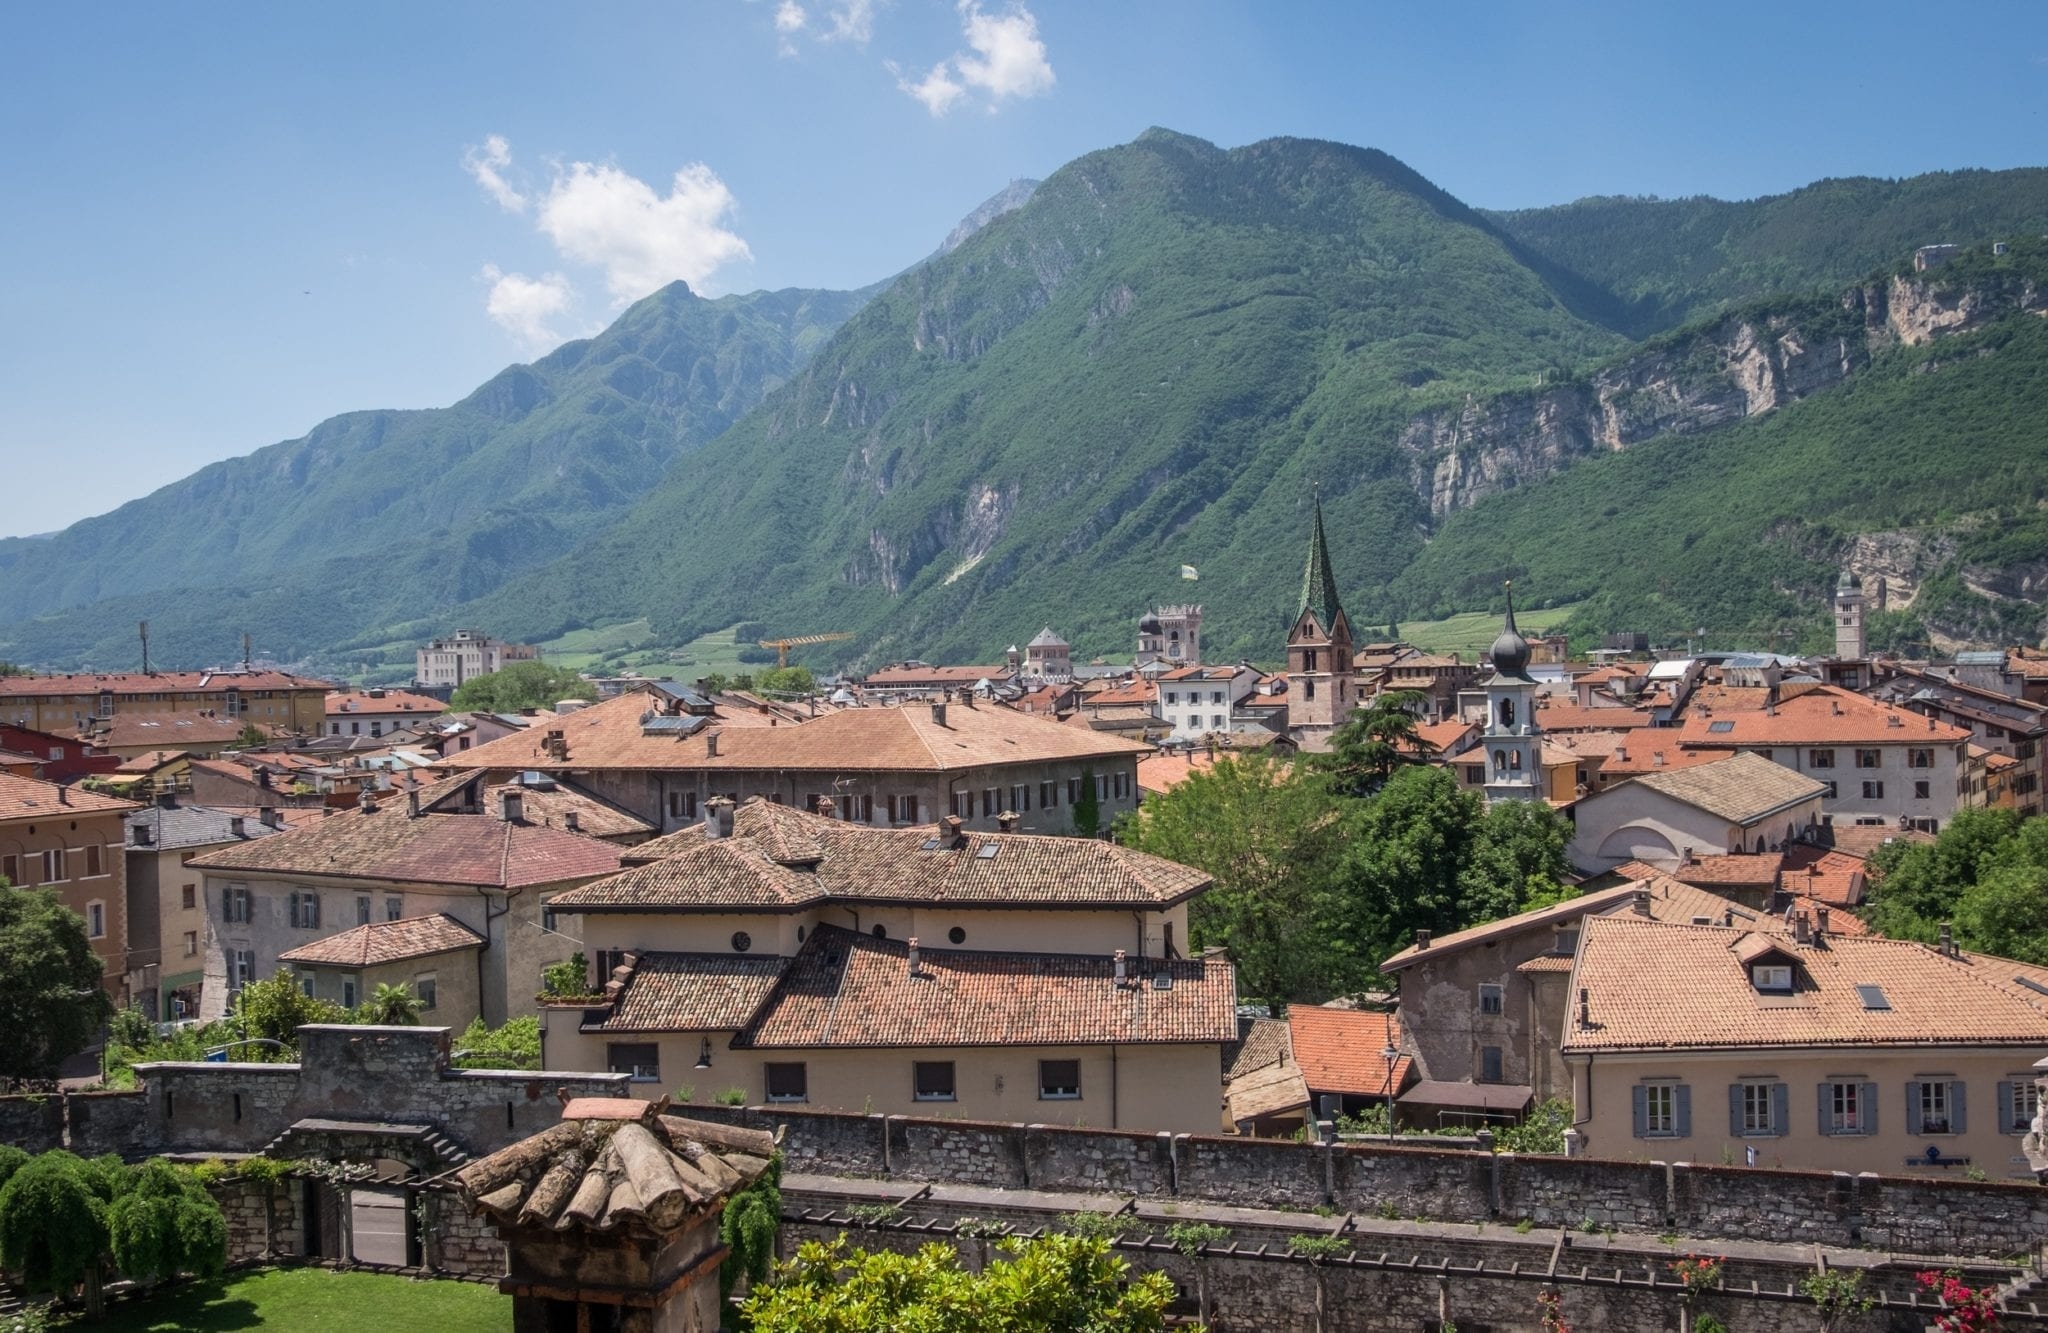 A view of the terra cotta roofs in the old town of Trento, Italy, with green mountains in the background underneath a blue sky with white spotted clouds.